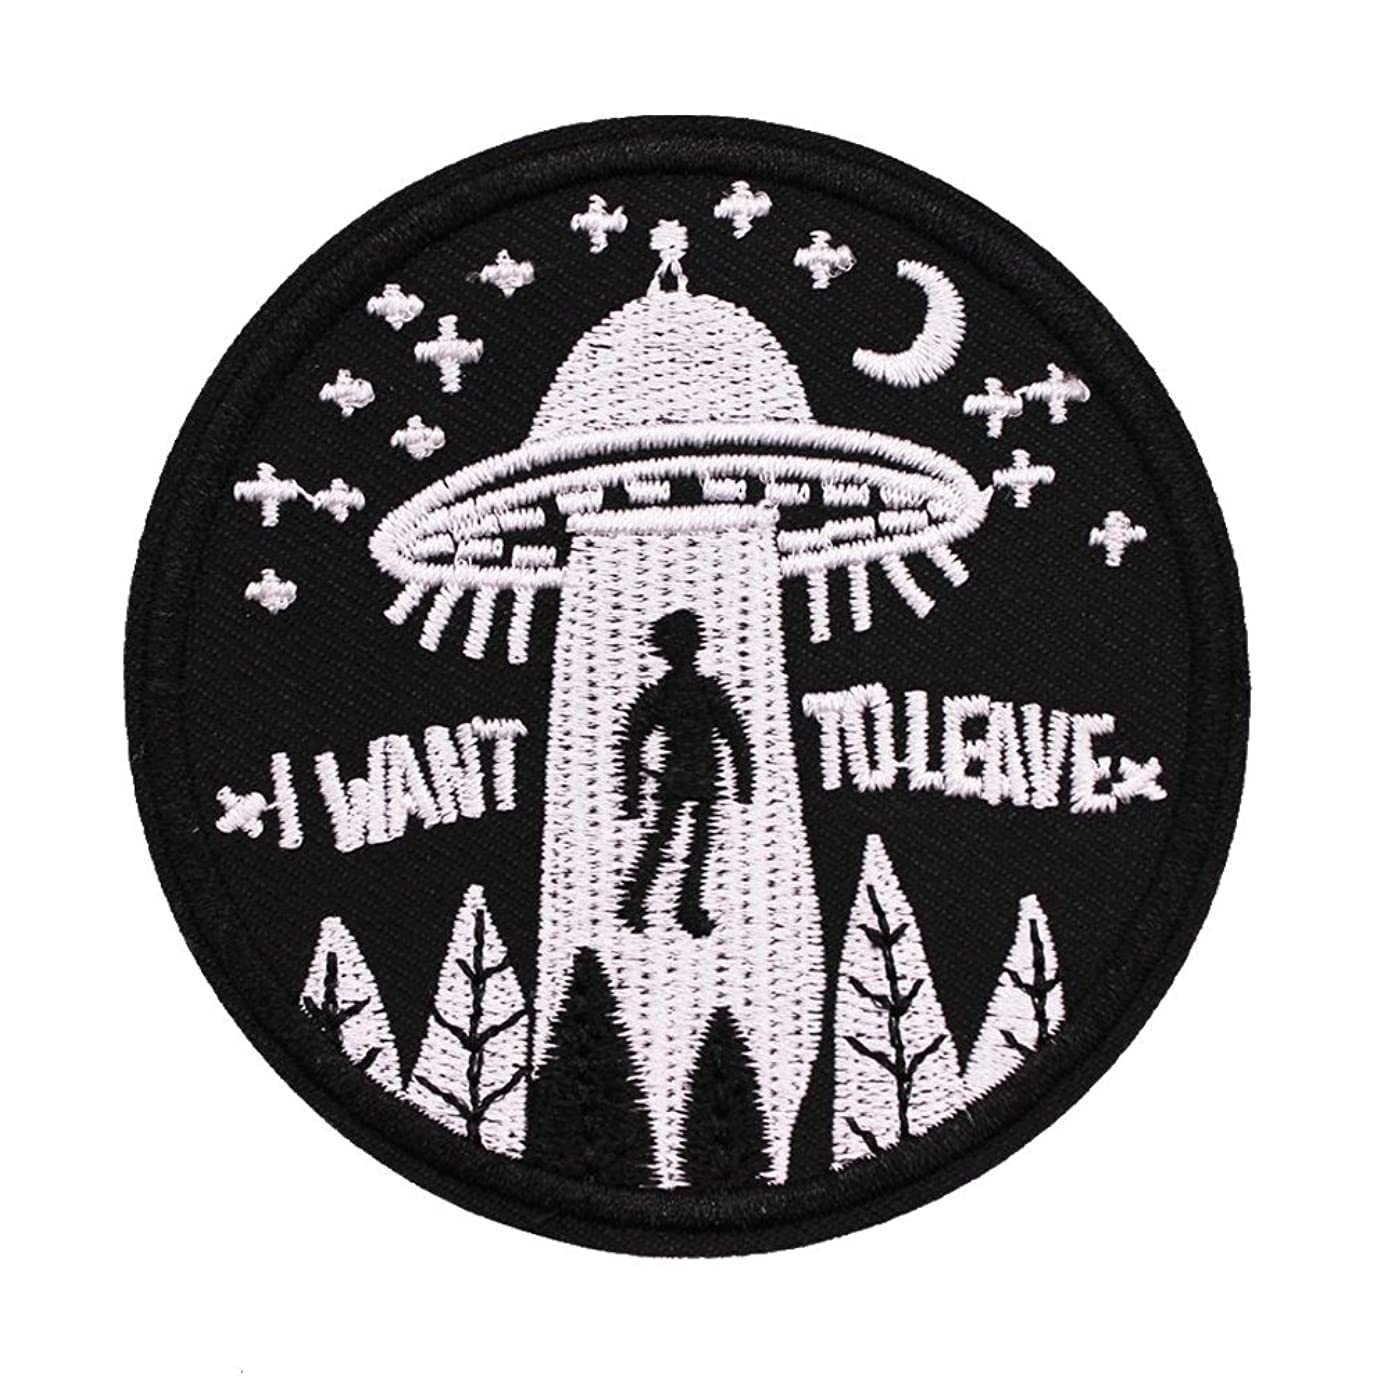 U-Sky Sew or Iron on Patches - I Want to Leave - Pack of 2 Different Design